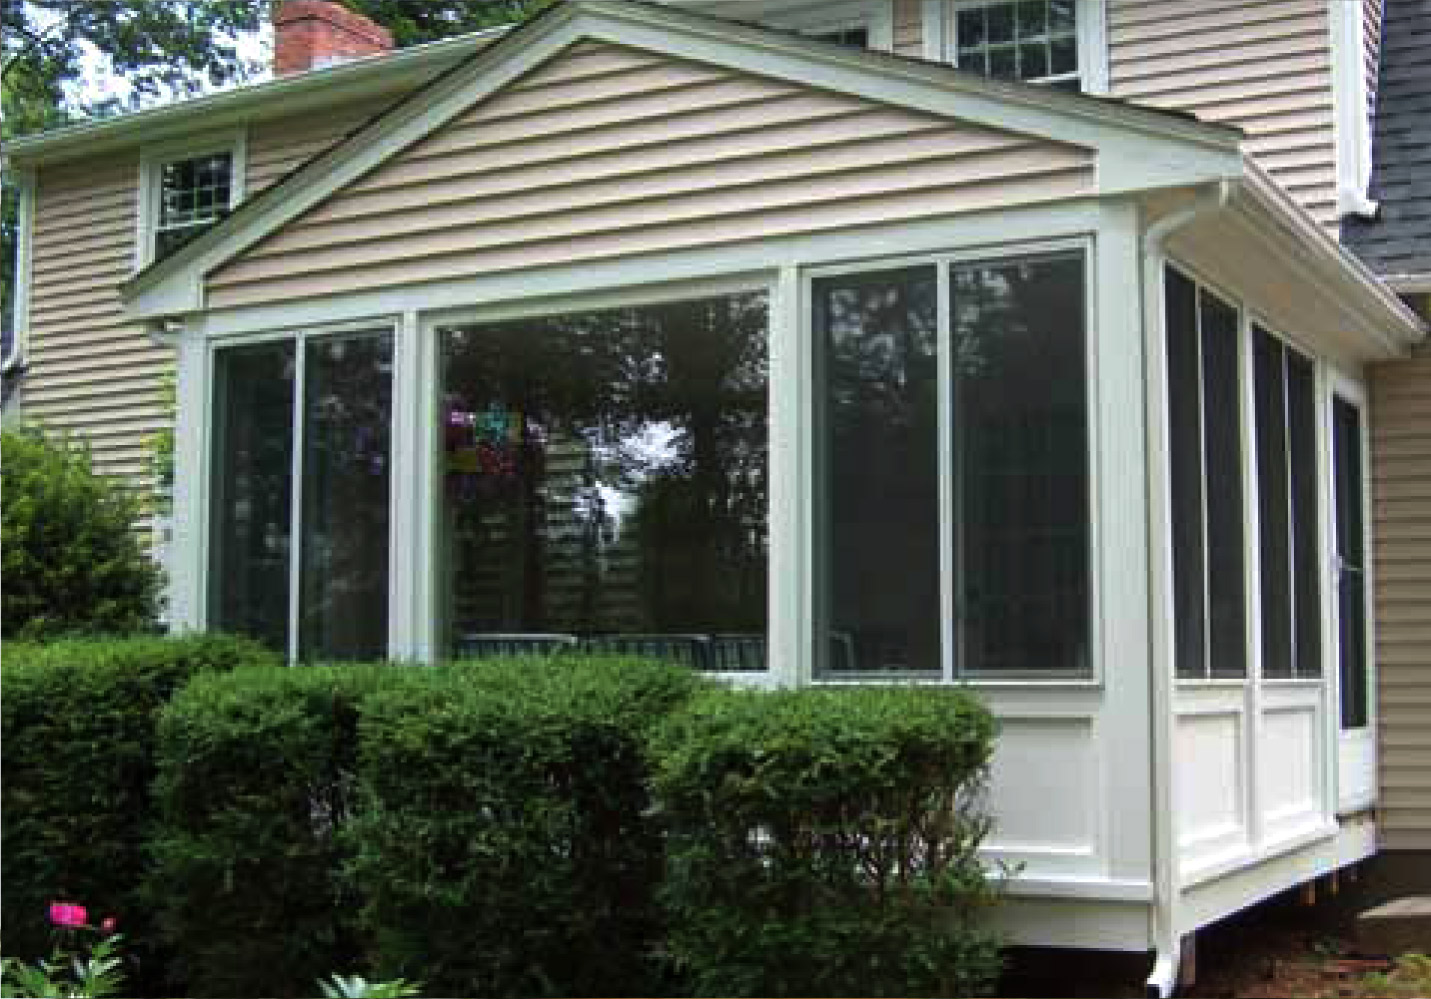 3 Season Porch Windows http://mainelyvinyl.com/?page_id=50